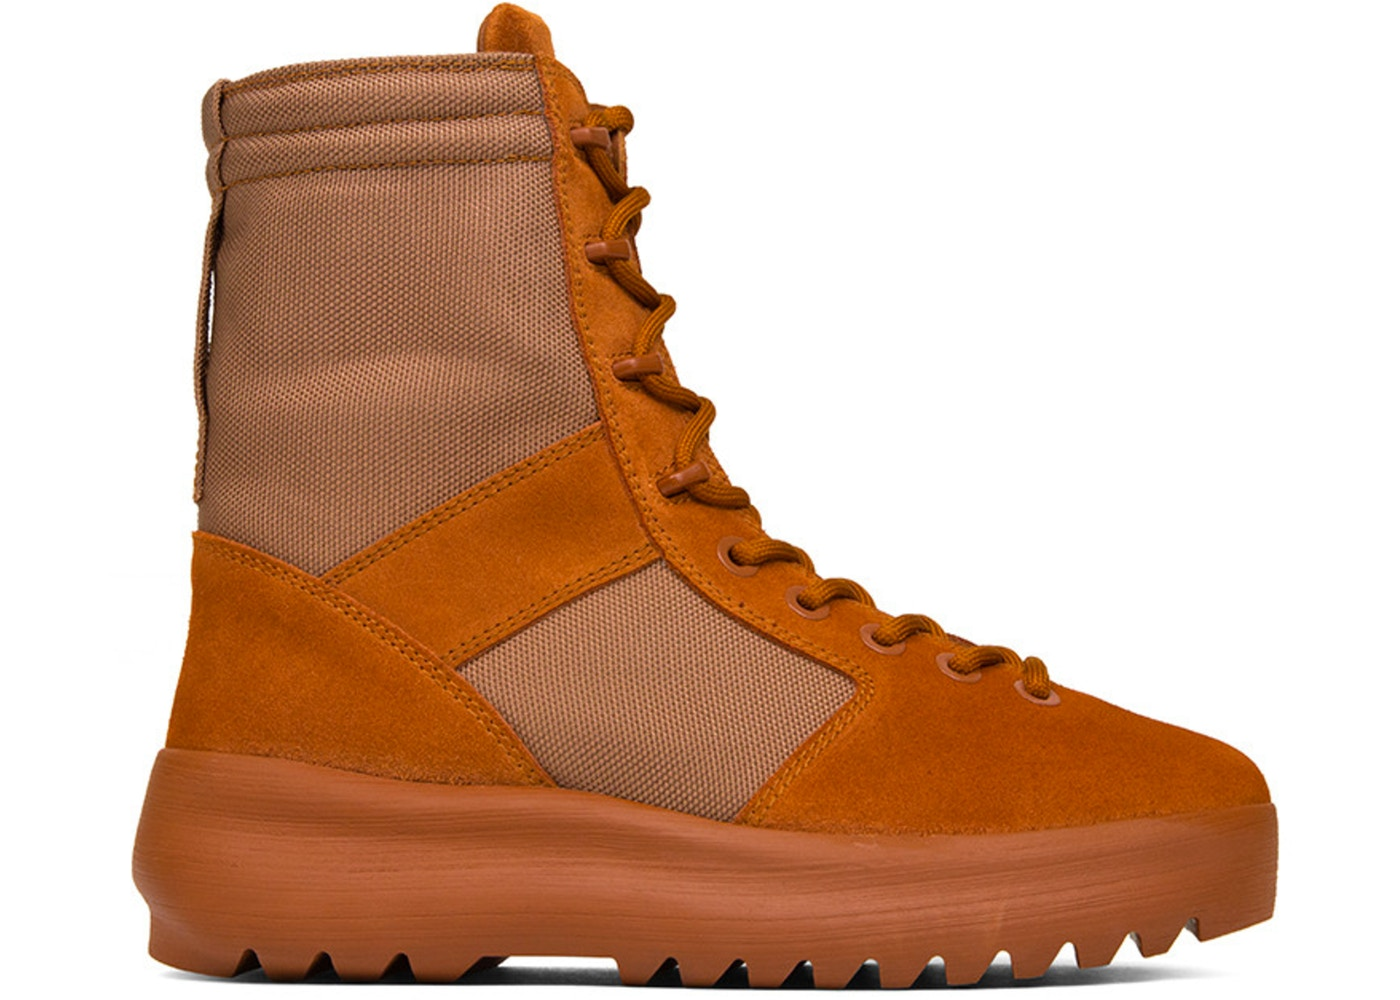 c3d01f900fd8e Yeezy Military Boot Burnt Sienna - KM2606.010